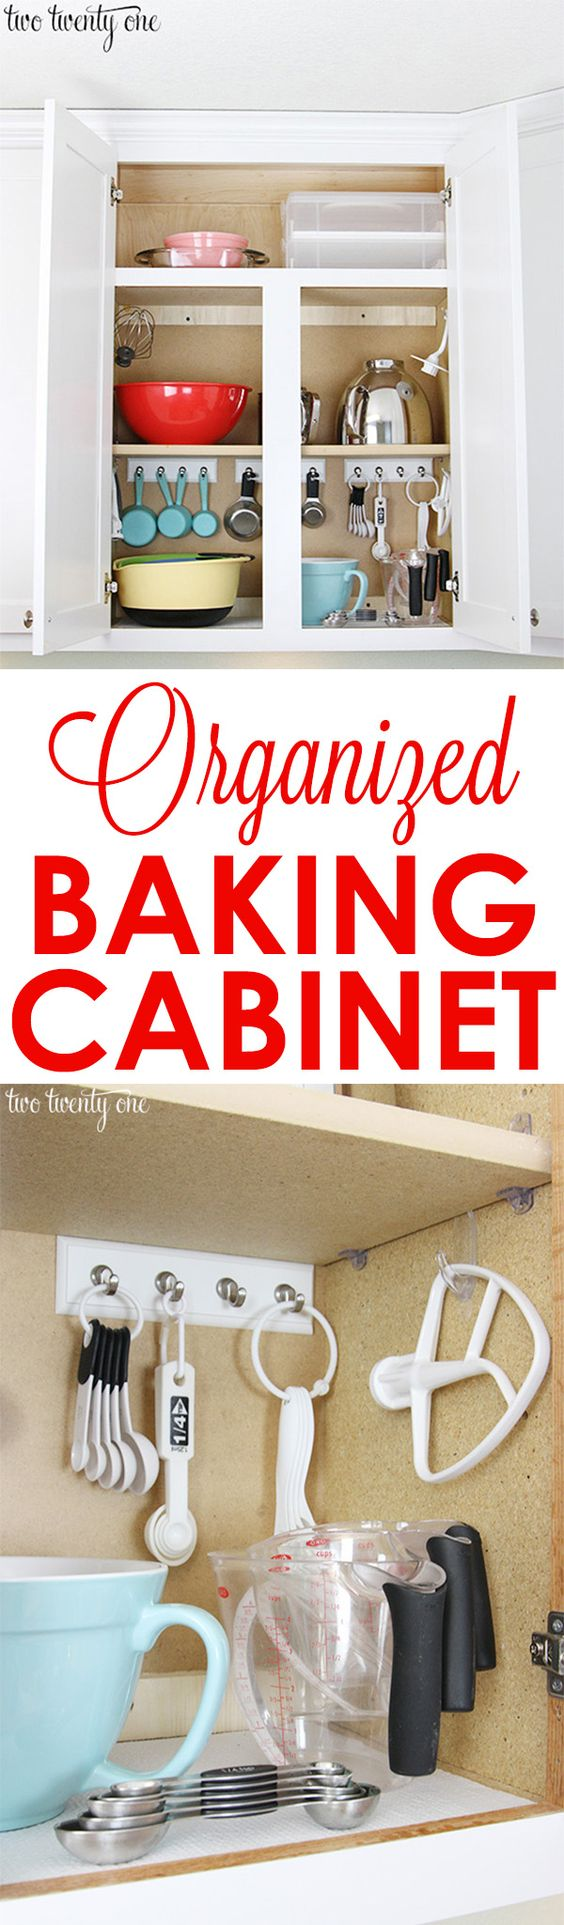 10 Organizing tips & Whimsy Wednesday - Your Modern Family